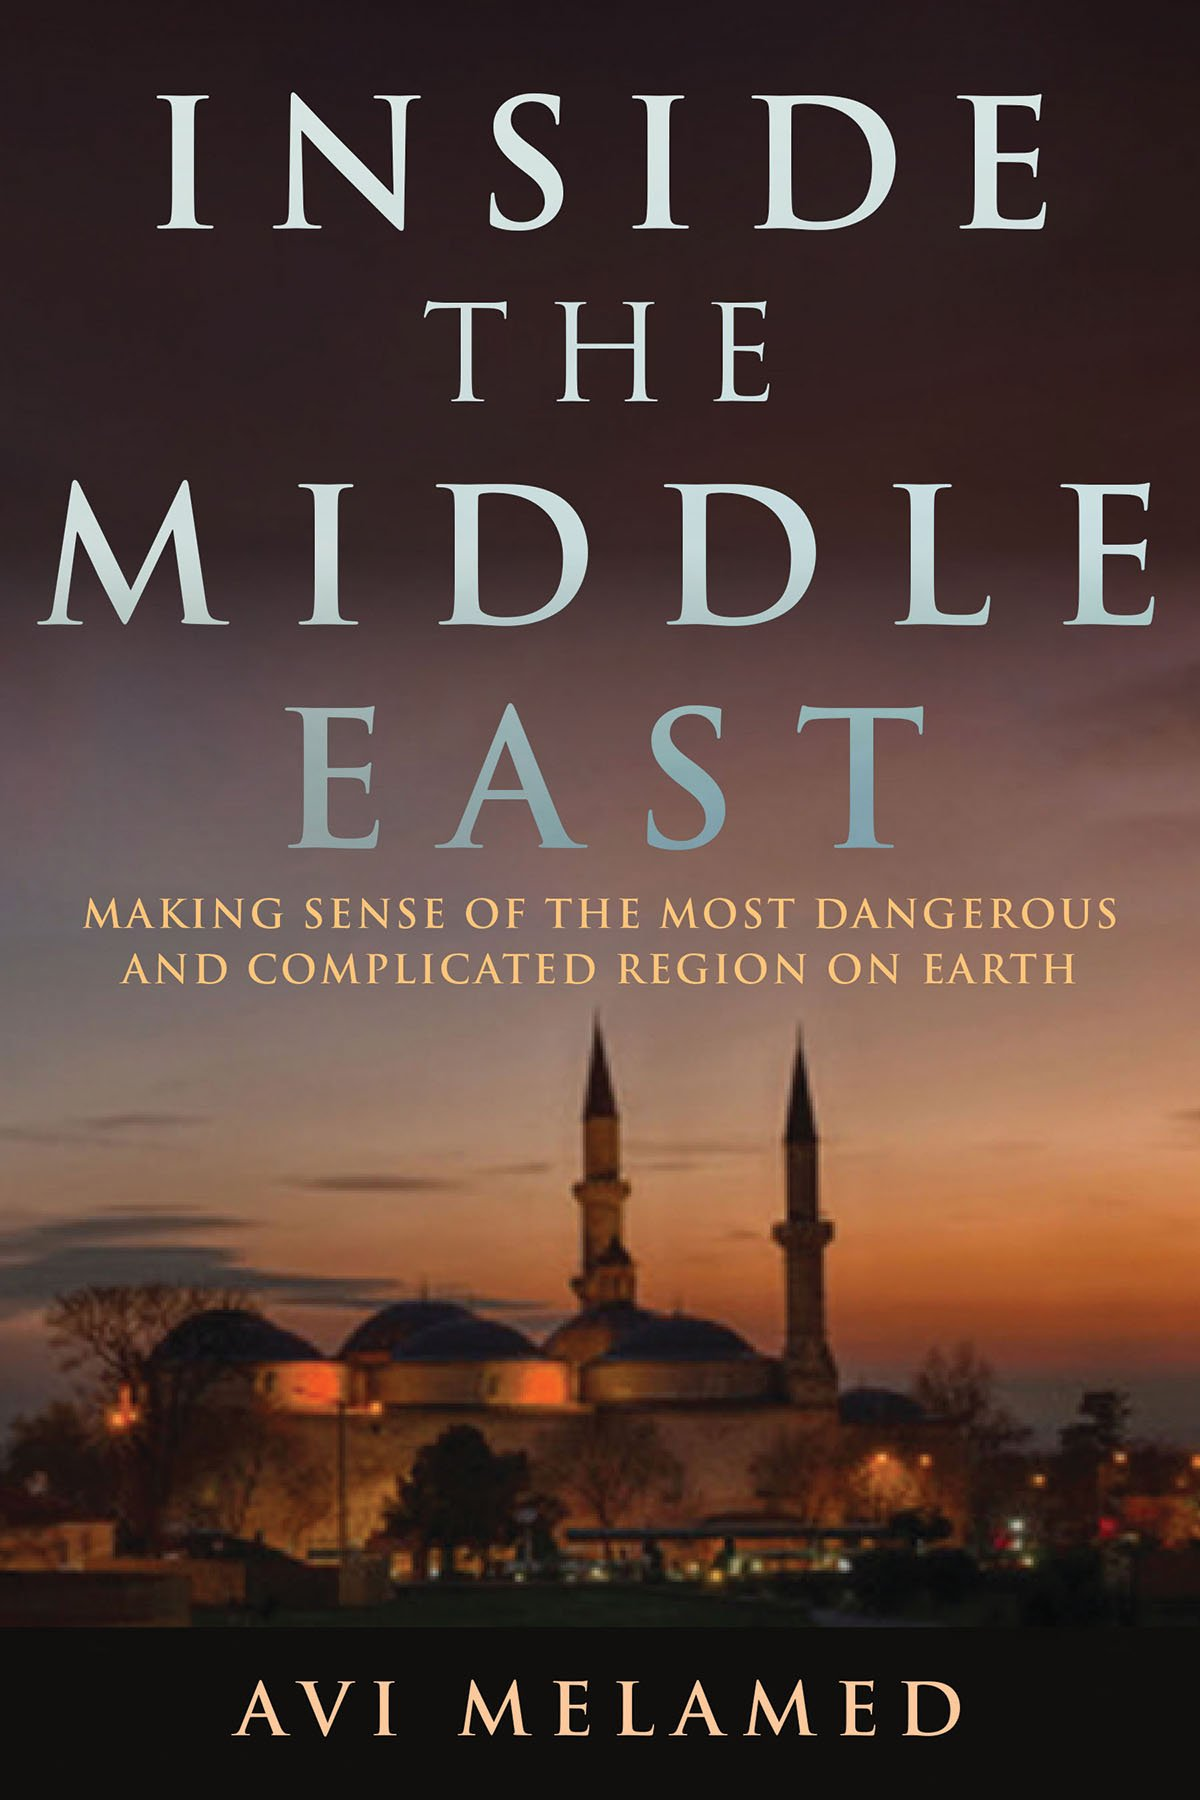 Inside the Middle East: Making Sense of the Most Dangerous